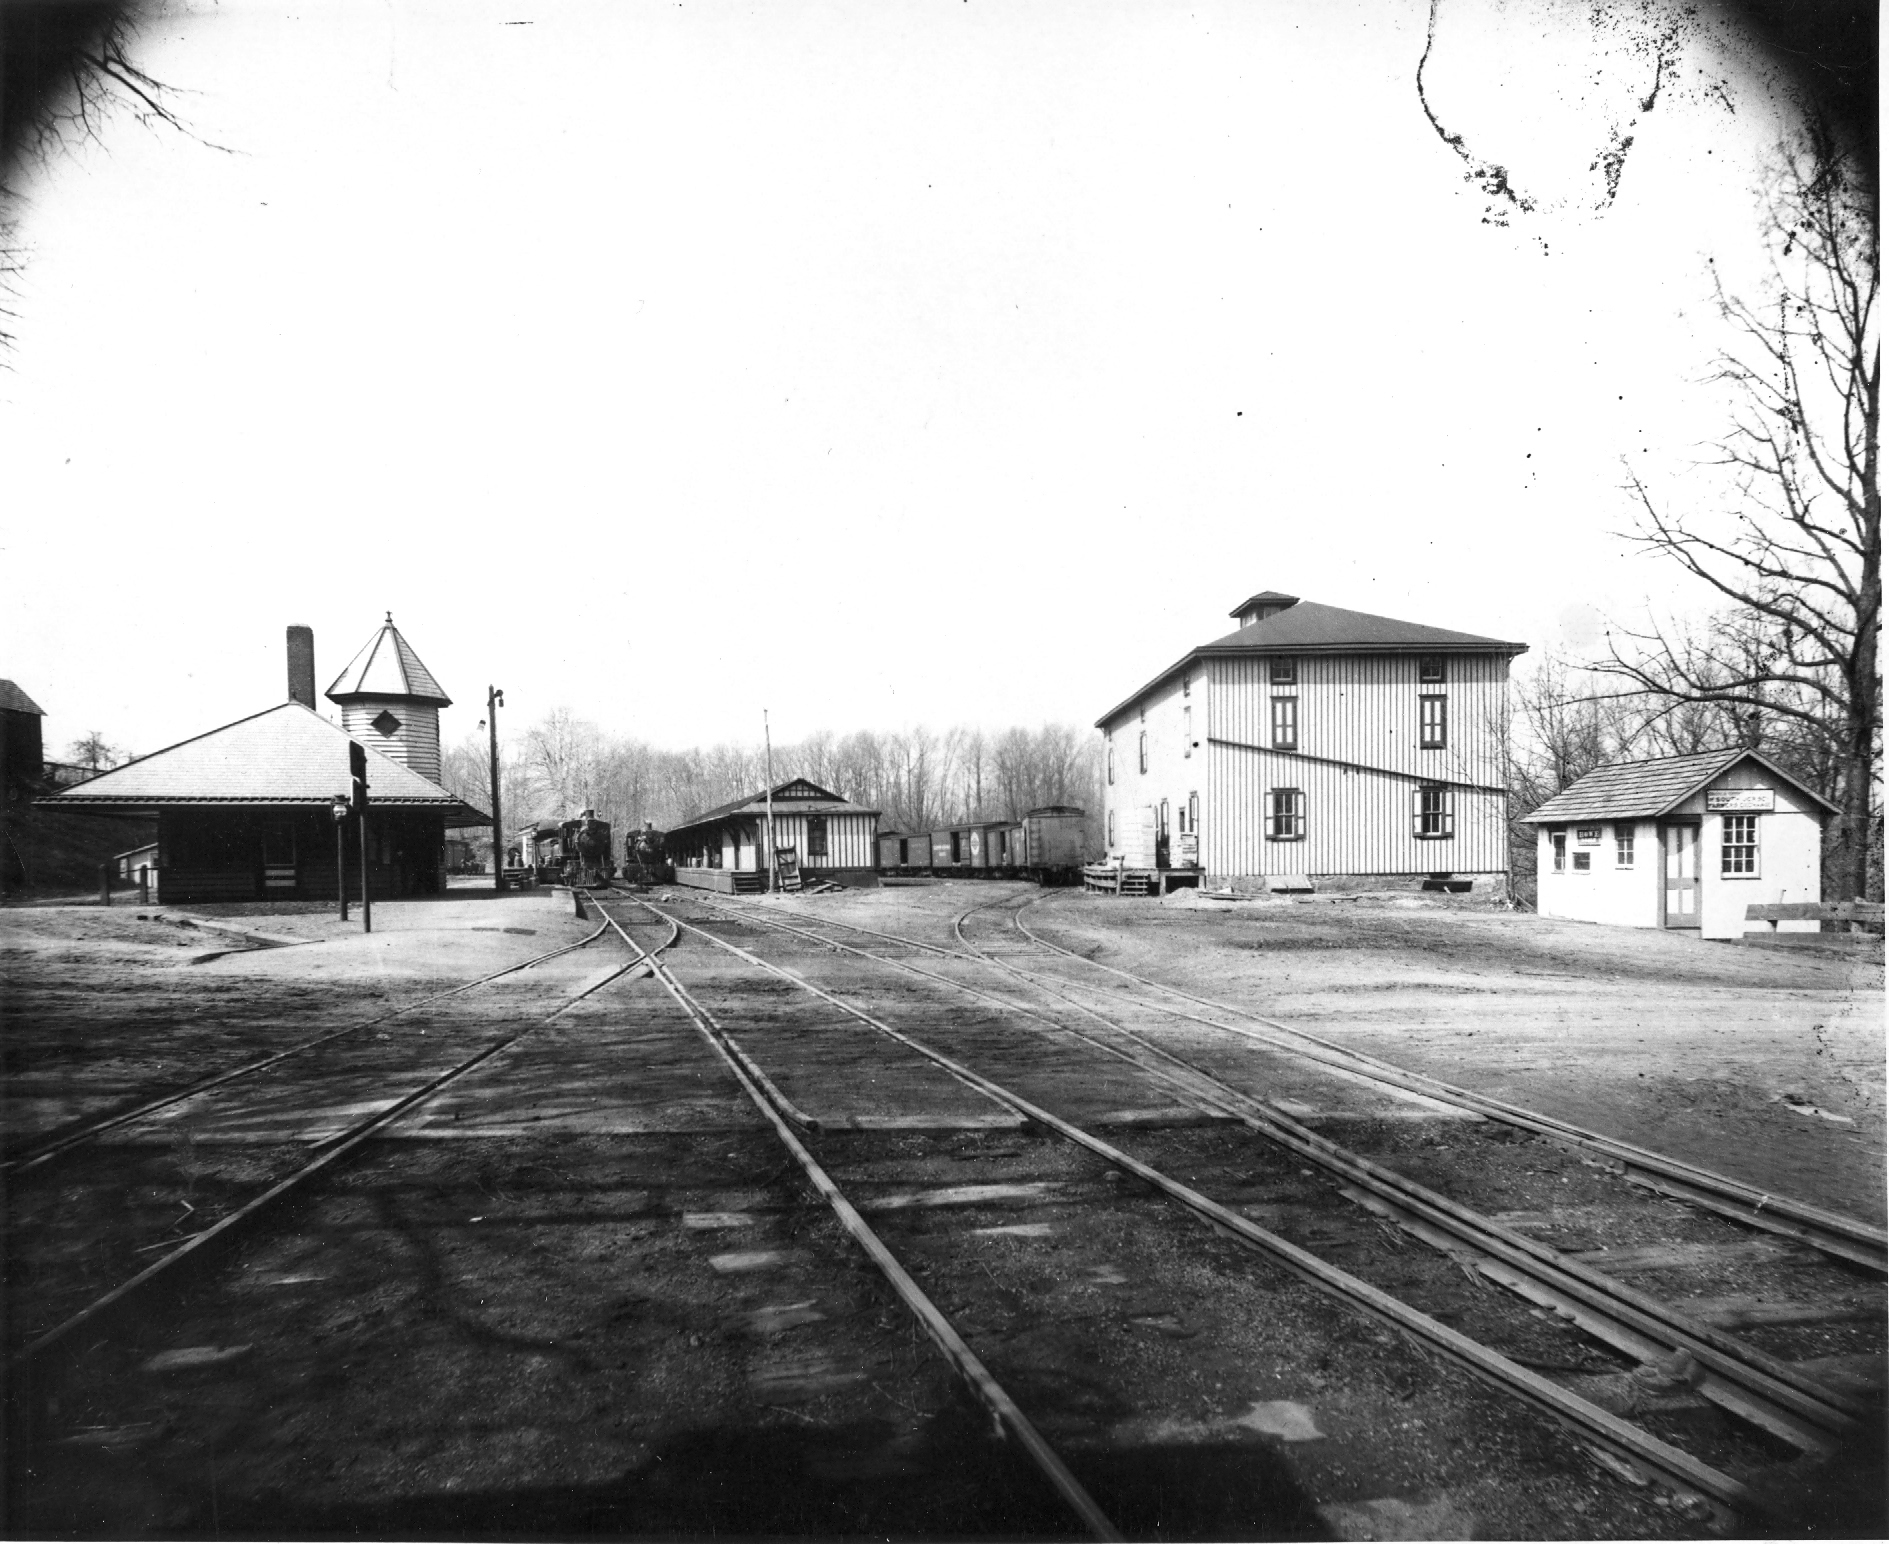 Mullica Hill Station and Warehouse, South Main Street, c1900. Reading Railroad completed the Mullica Hill branch of the Williamstown line in 1889. It provided passenger service but became a major shipping point for the region's farm produce. [HTHS: John J. McCue Collection]